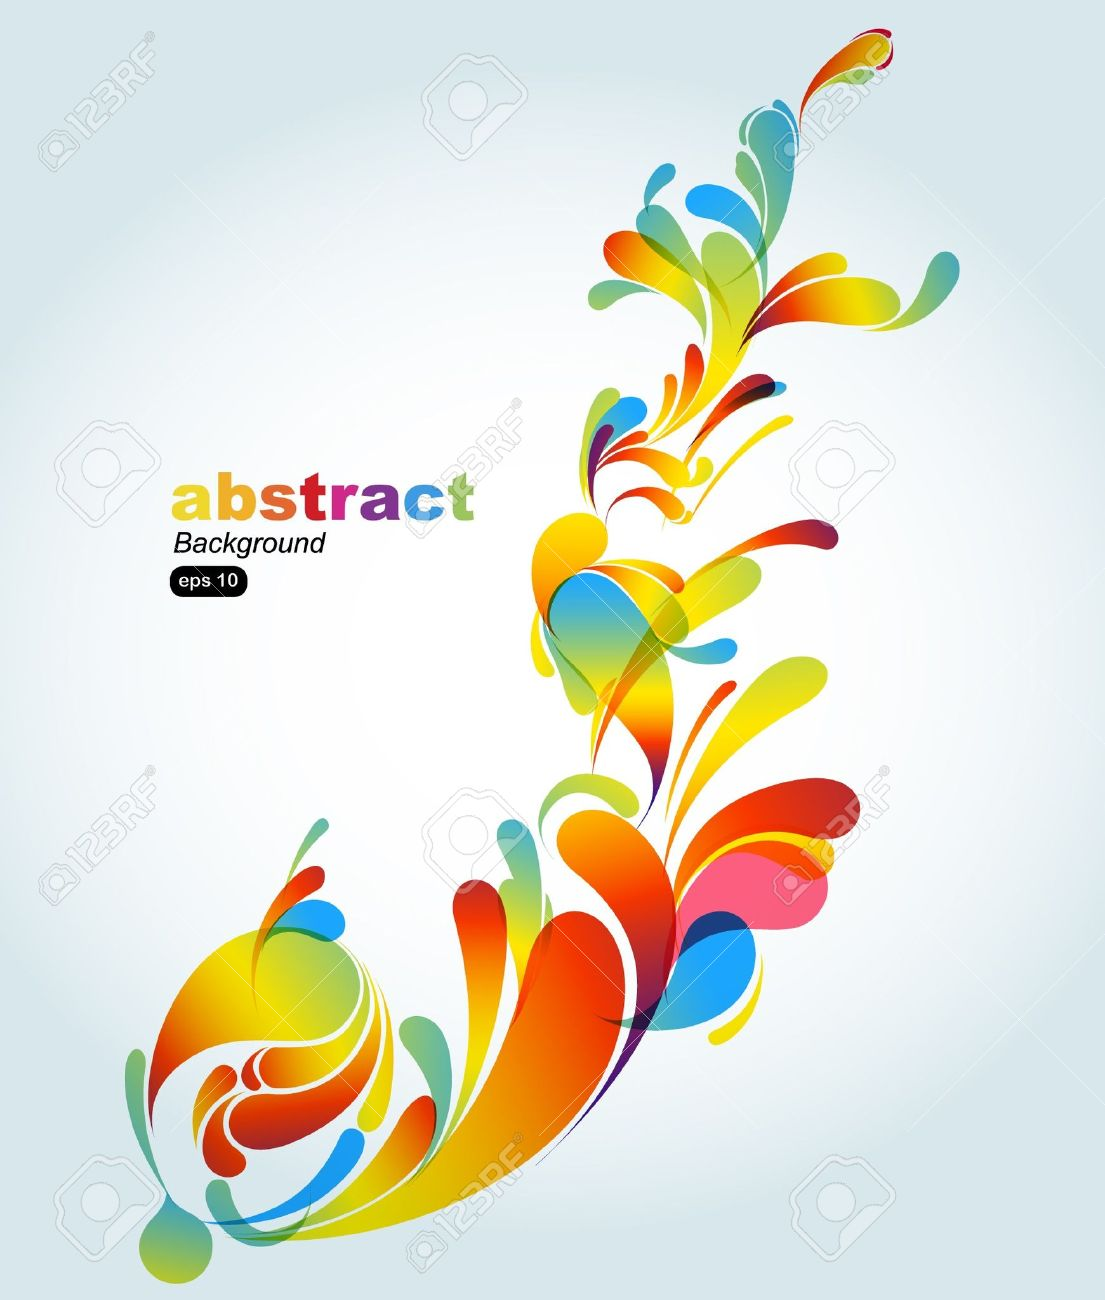 Colorful abstract design background vector art free vector - Abstract Colorful Background Stock Vector 7904670